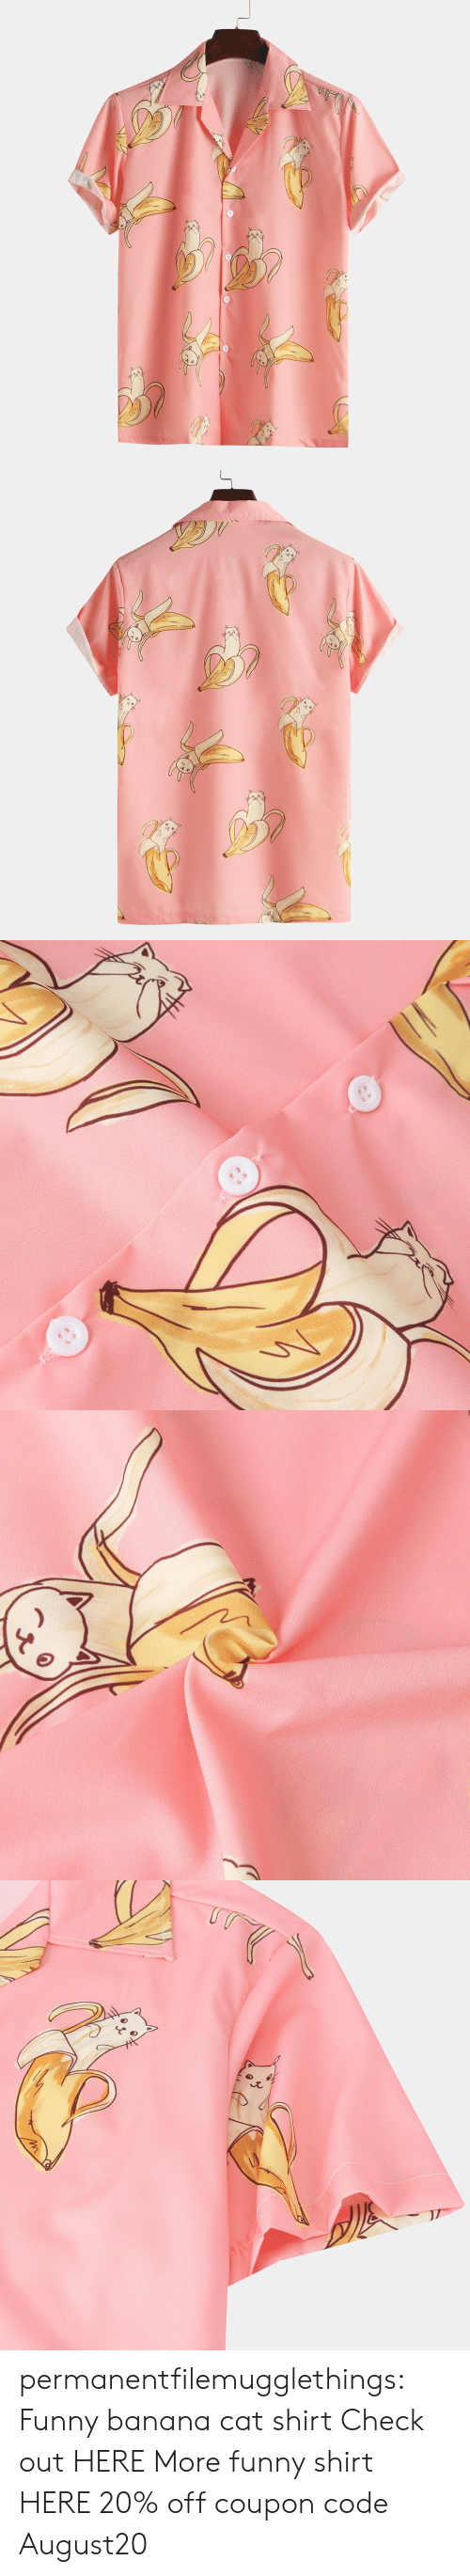 Funny, Tumblr, and Banana: permanentfilemugglethings: Funny banana cat shirt Check out HERE More funny shirt HERE 20% off coupon code:August20